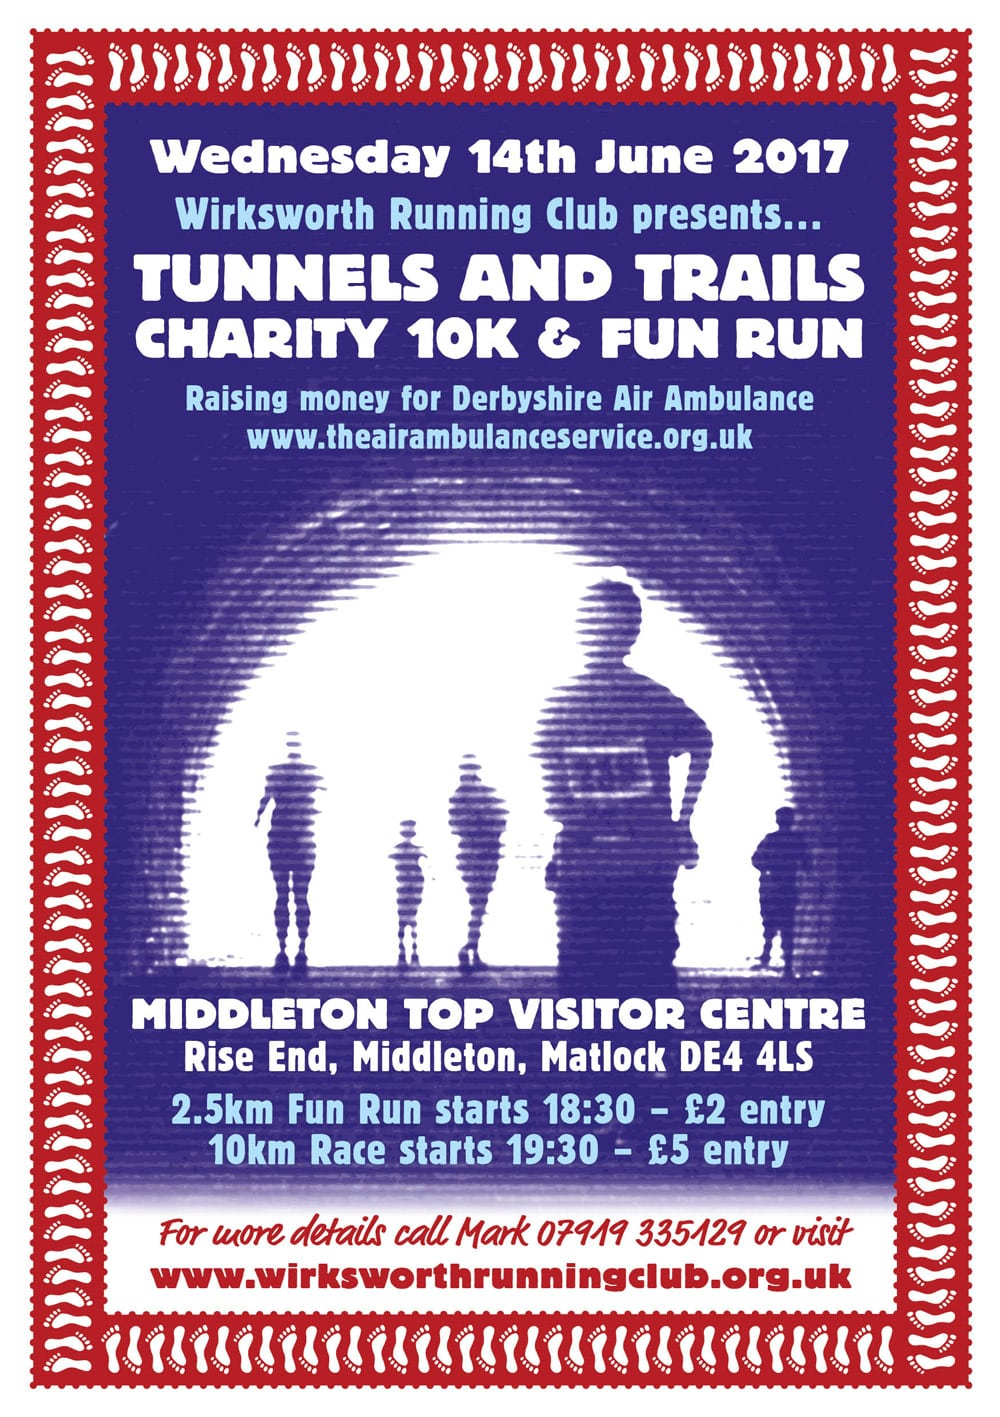 2017 Tunnels and Trails poster